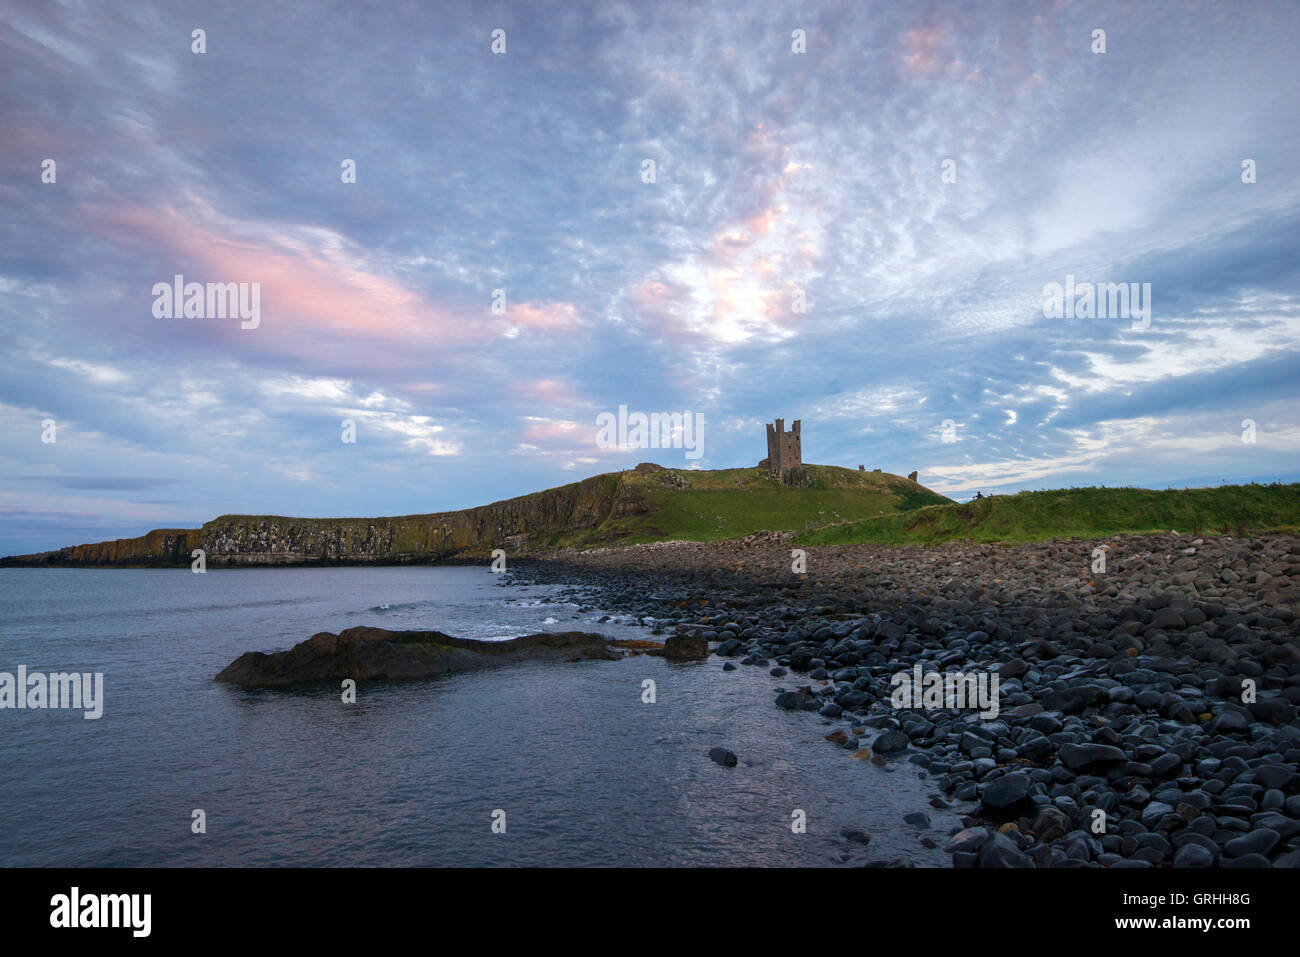 The ruins of Dunstanburgh Castle on the coast of Northumberland, England UK - Stock Image